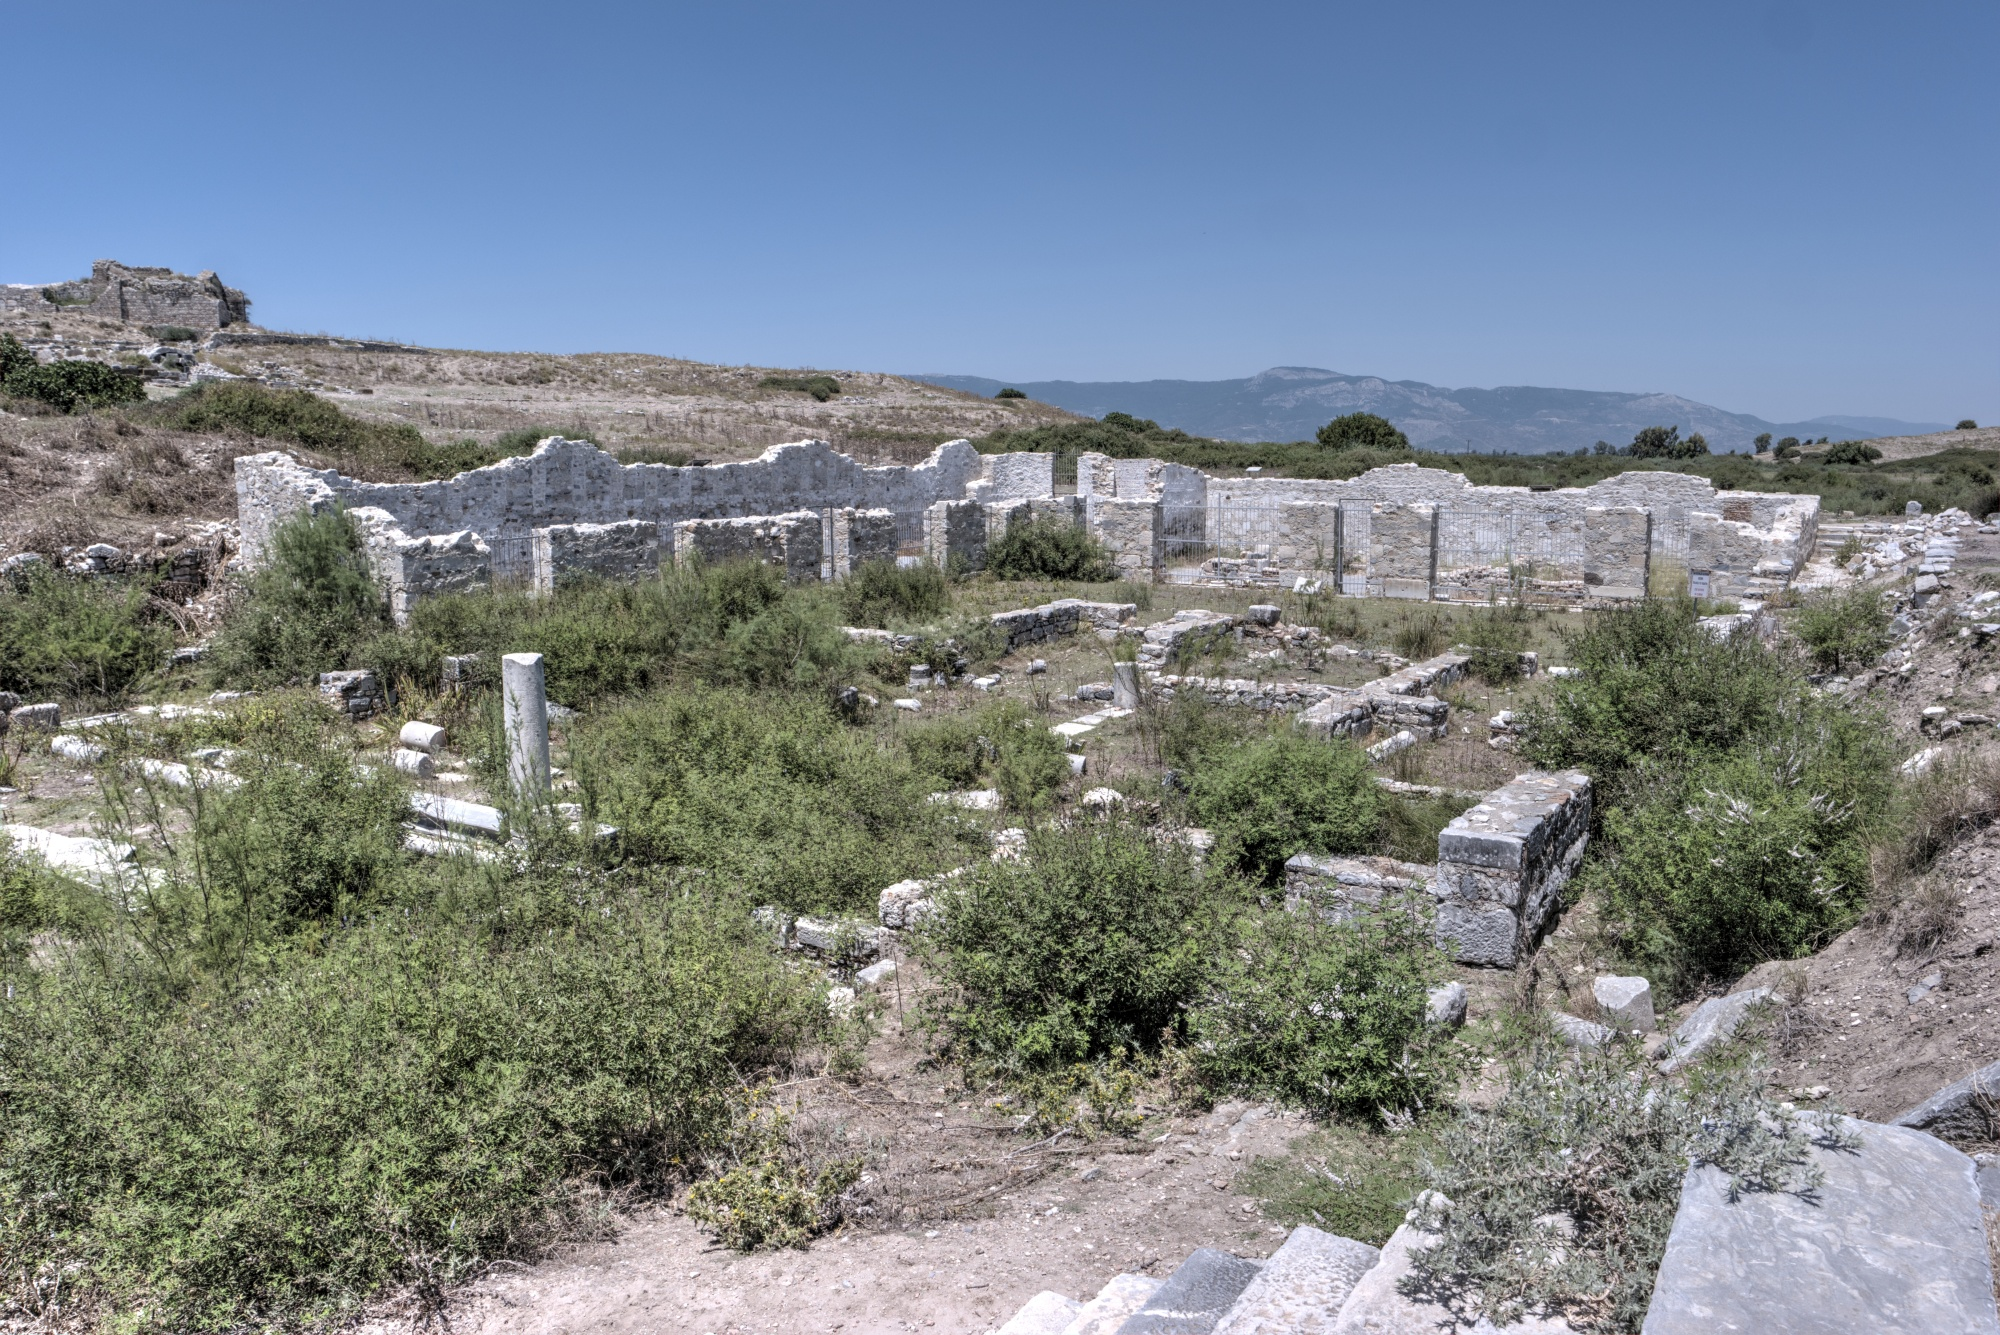 Church of St. Michael and the bishop's palace of Miletus